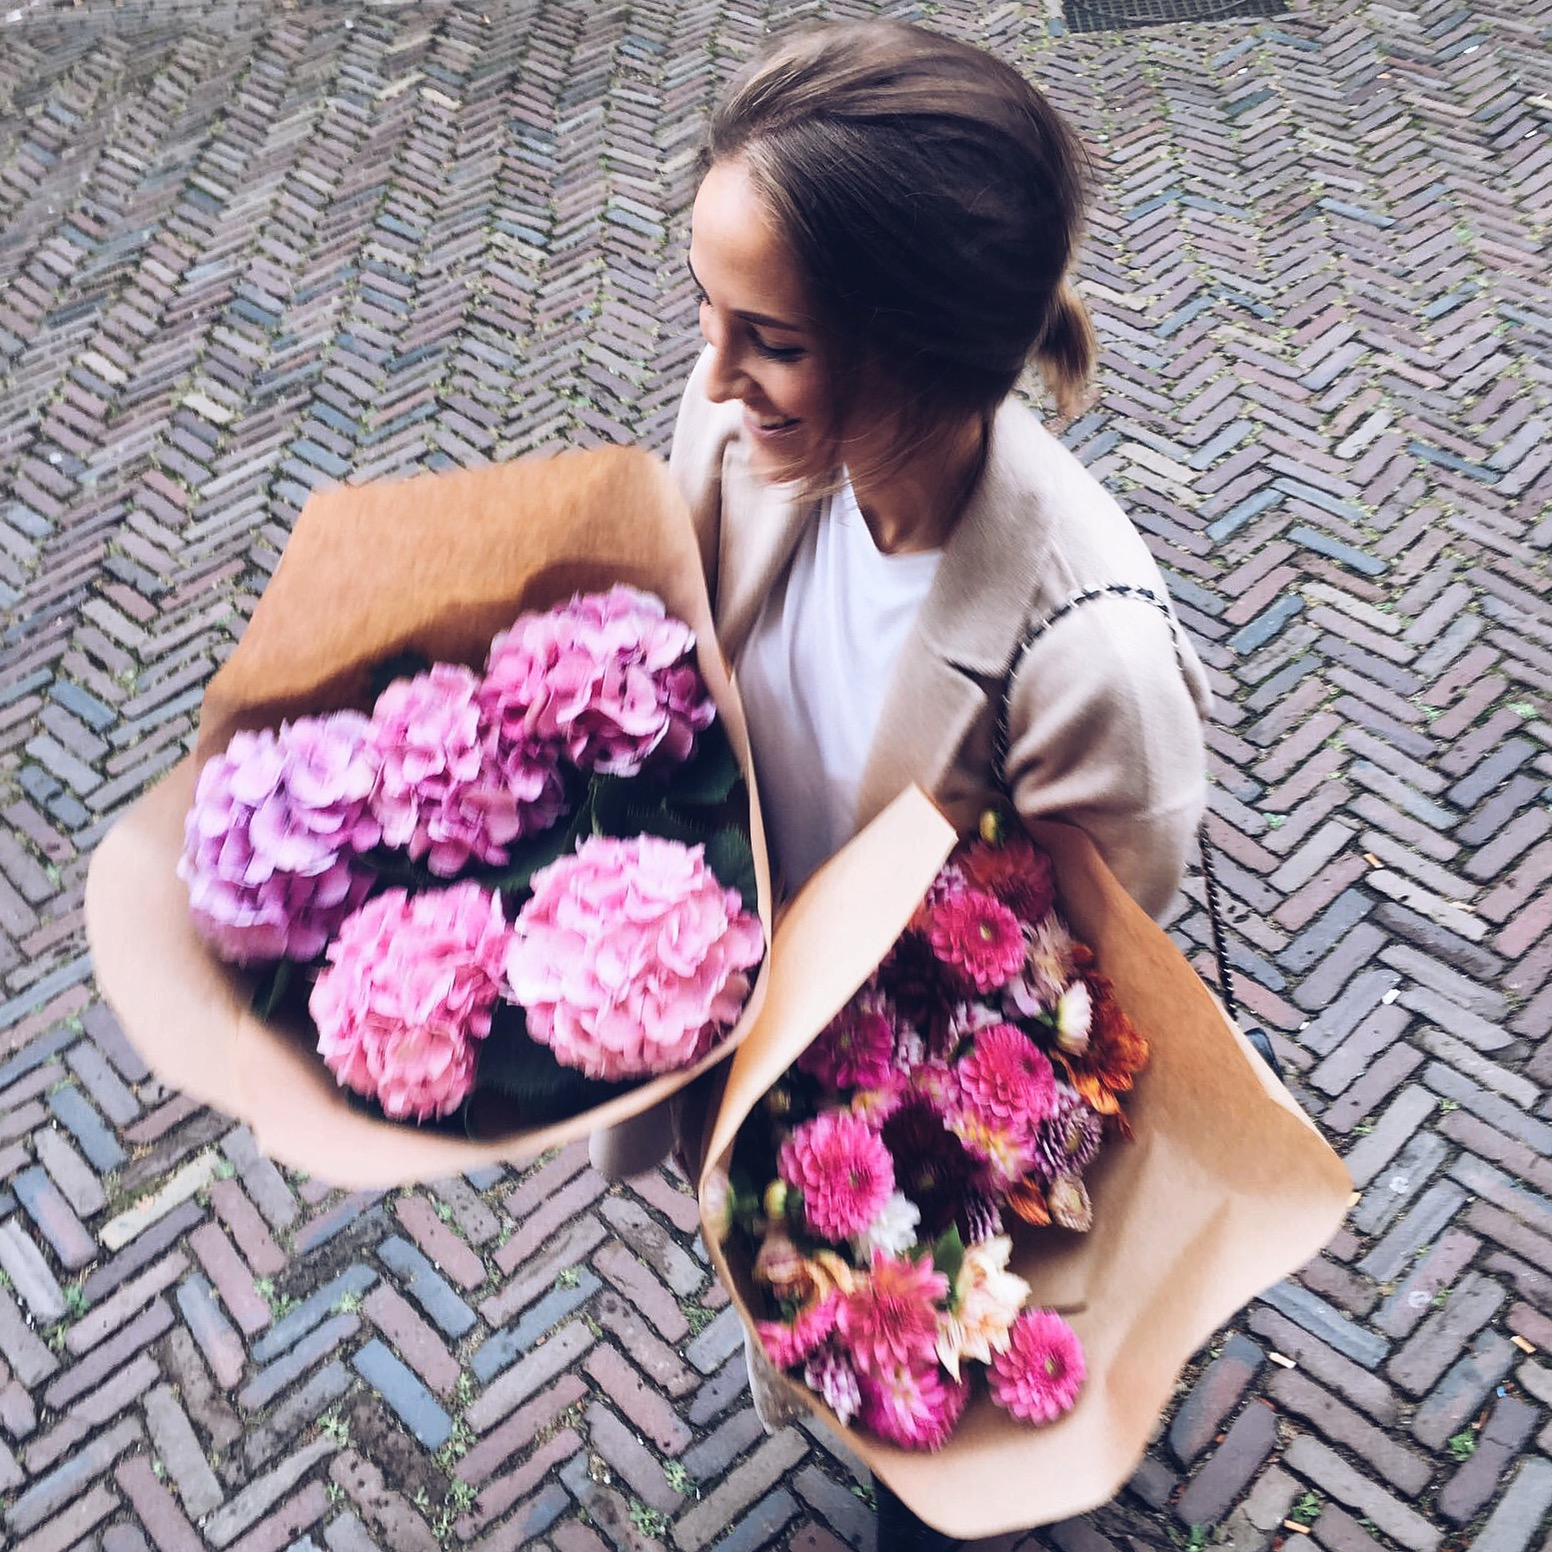 linda_tsetis_worlds_affair_flower_lover_style